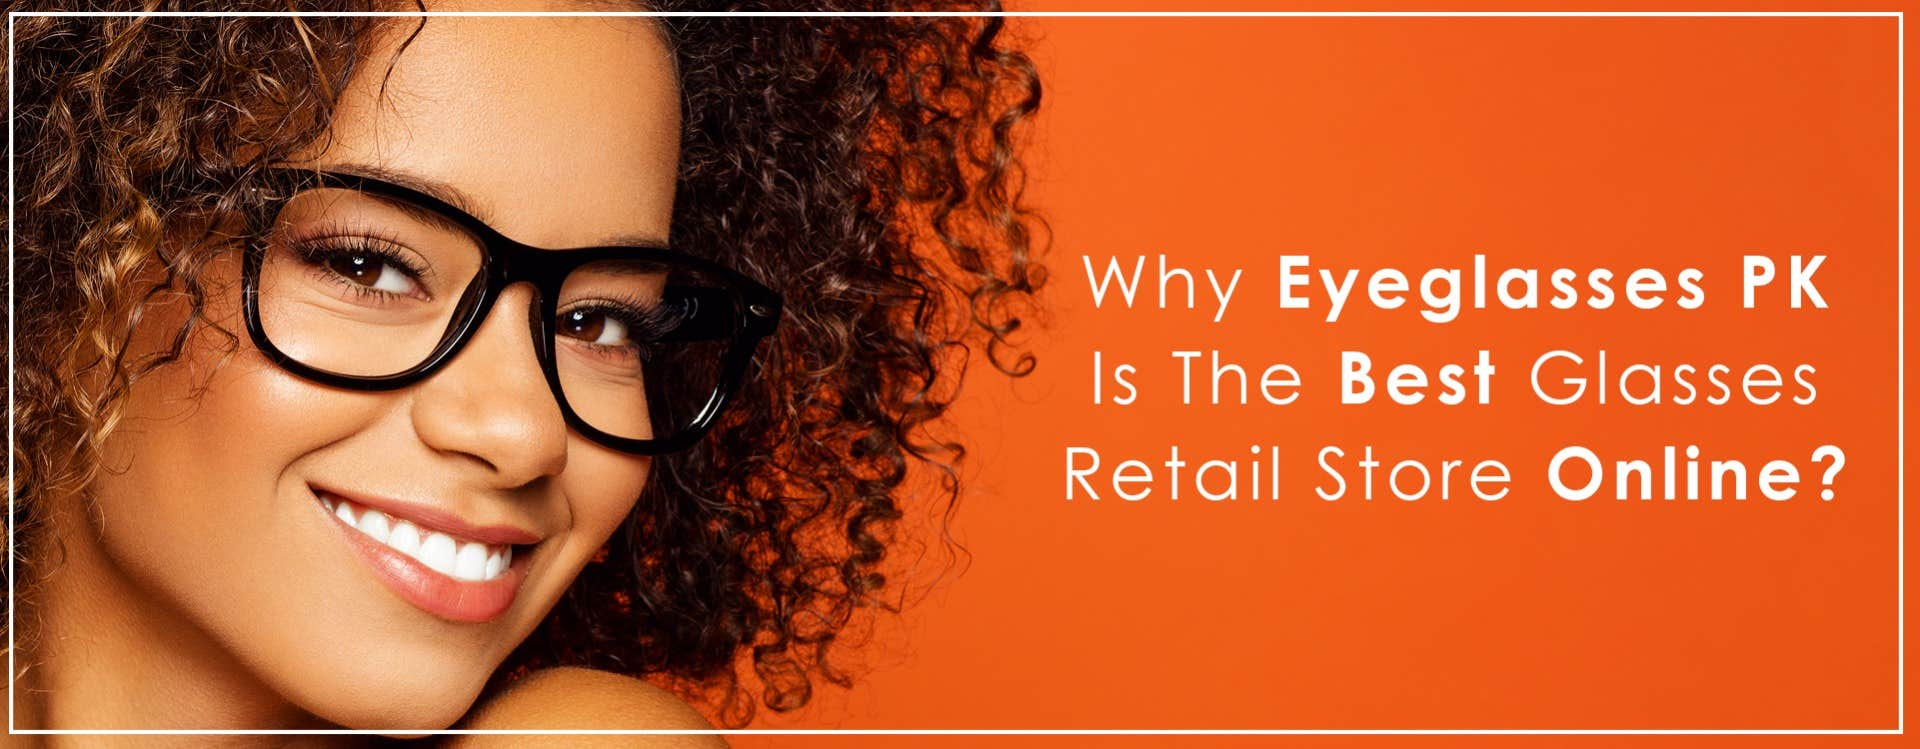 Why Eyeglasses PK Is The Best Glasses Retail Store Online?